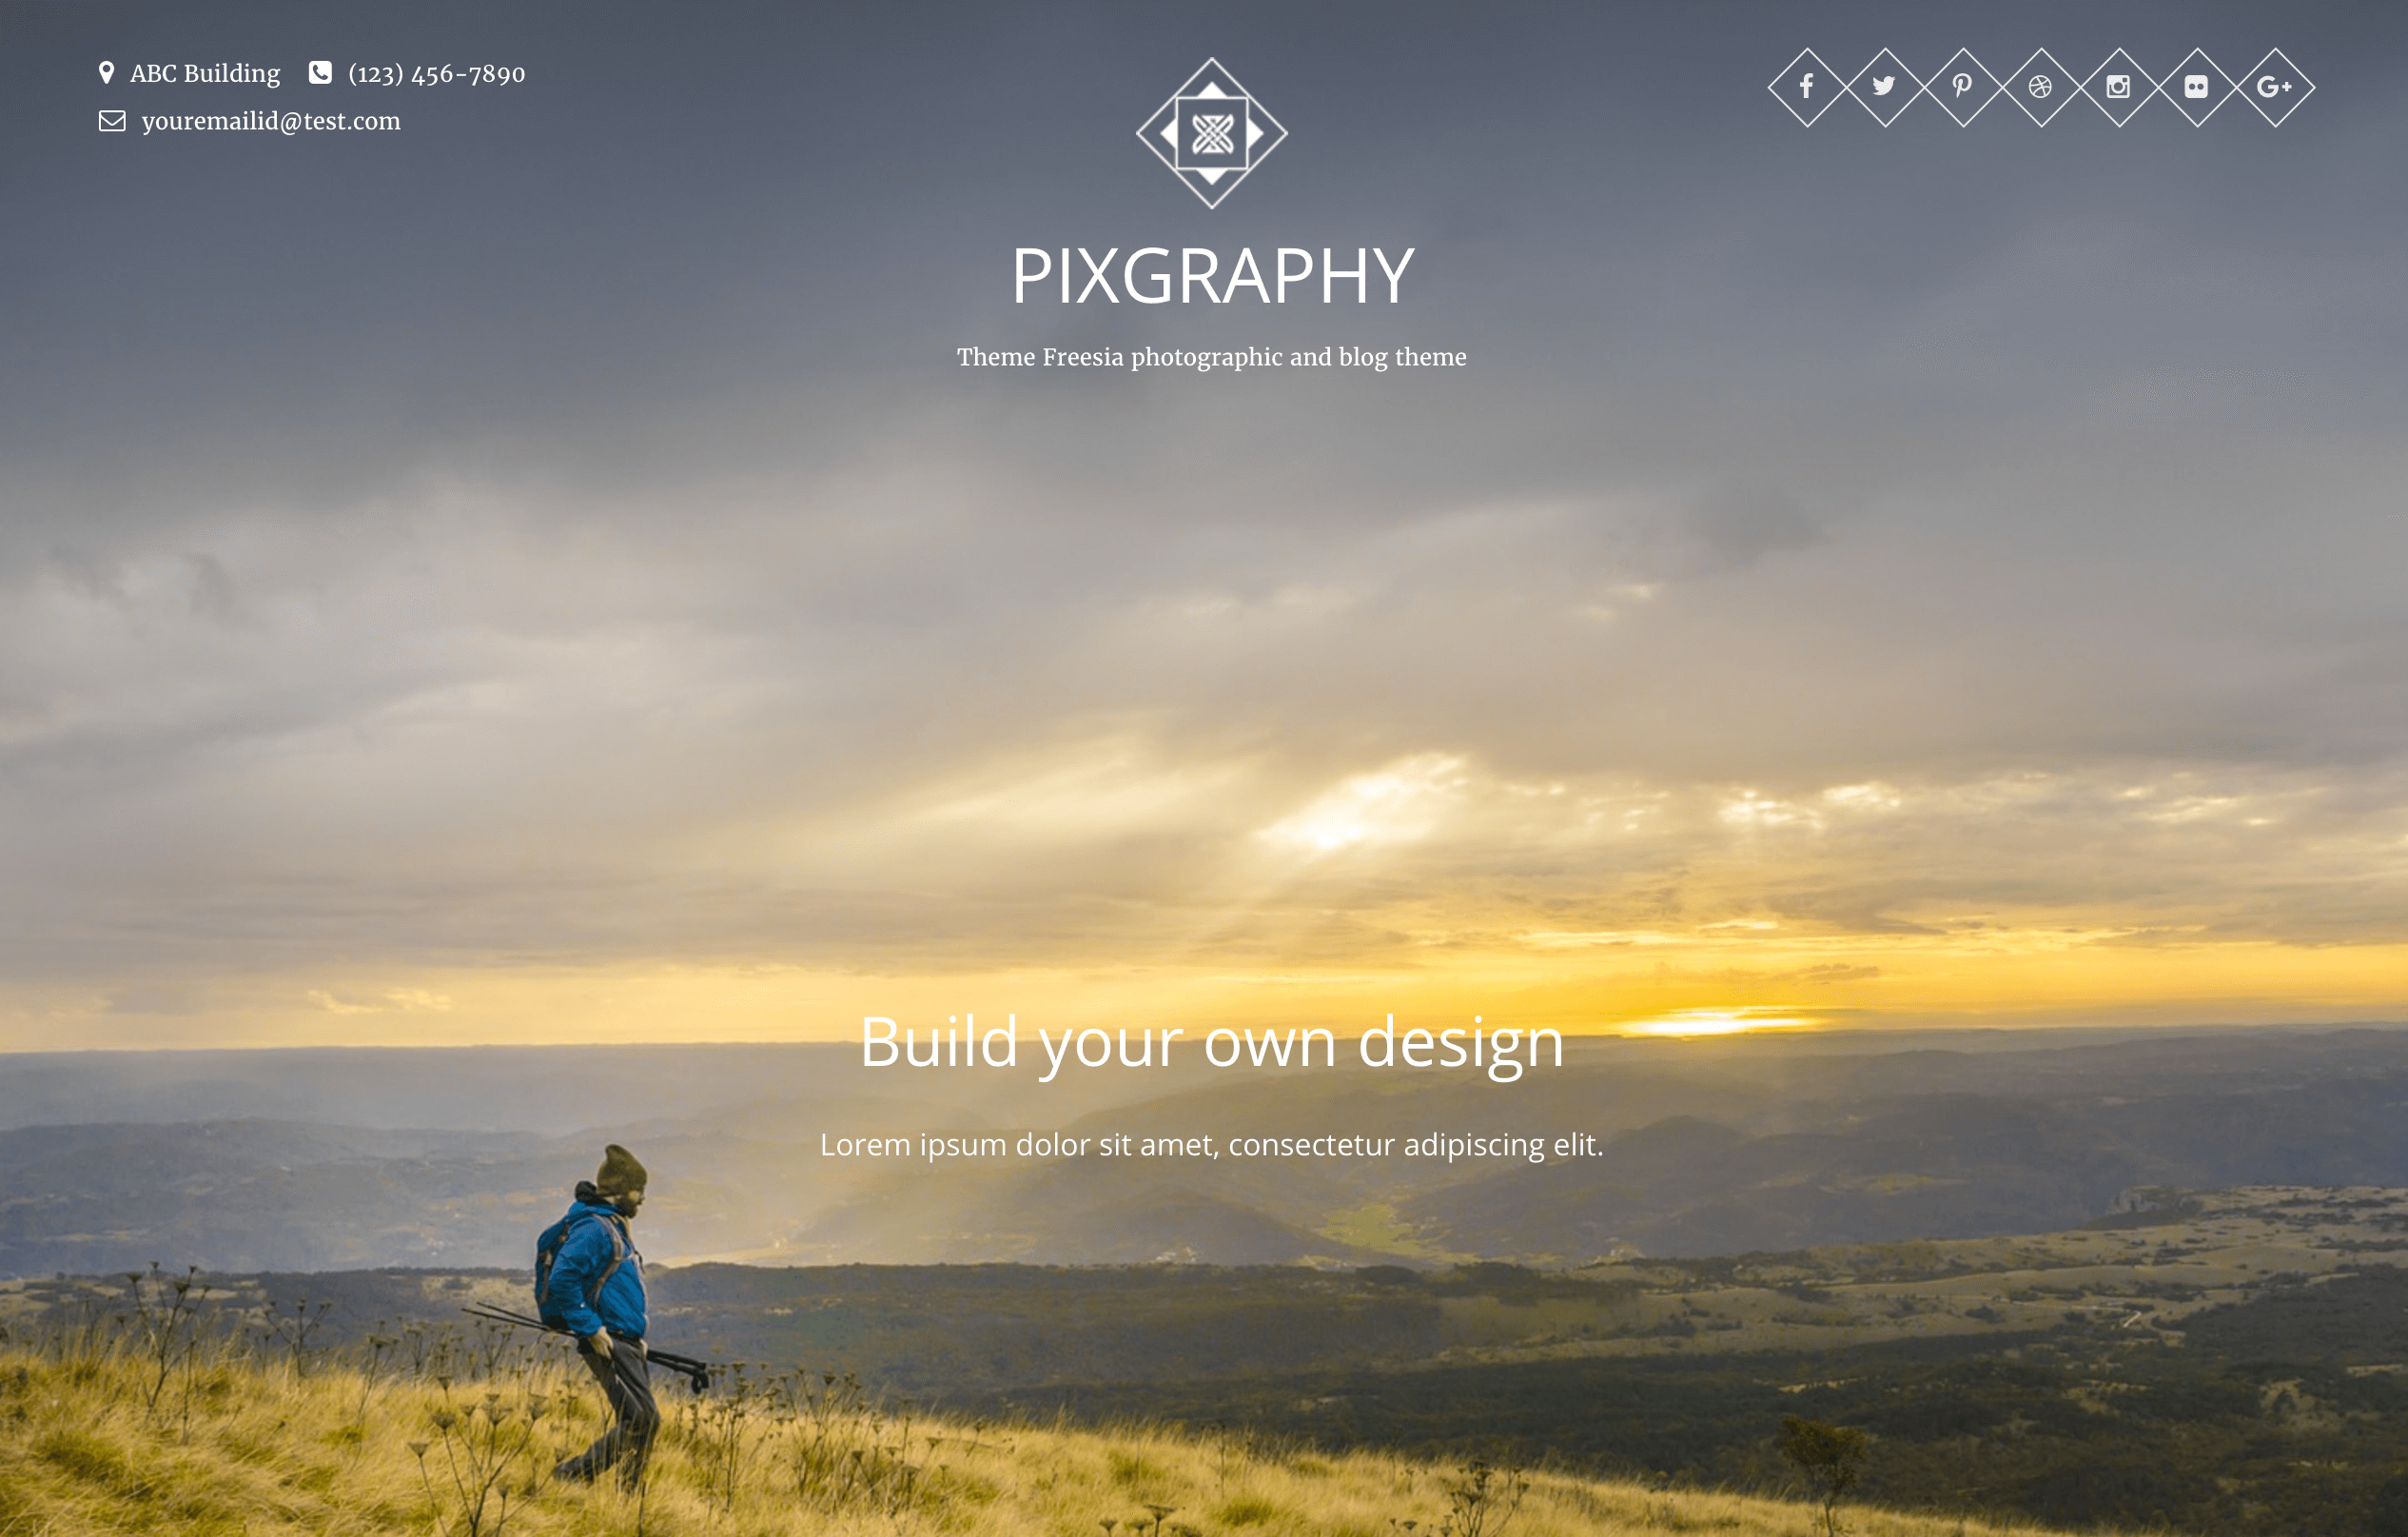 The Pixgraphy theme.